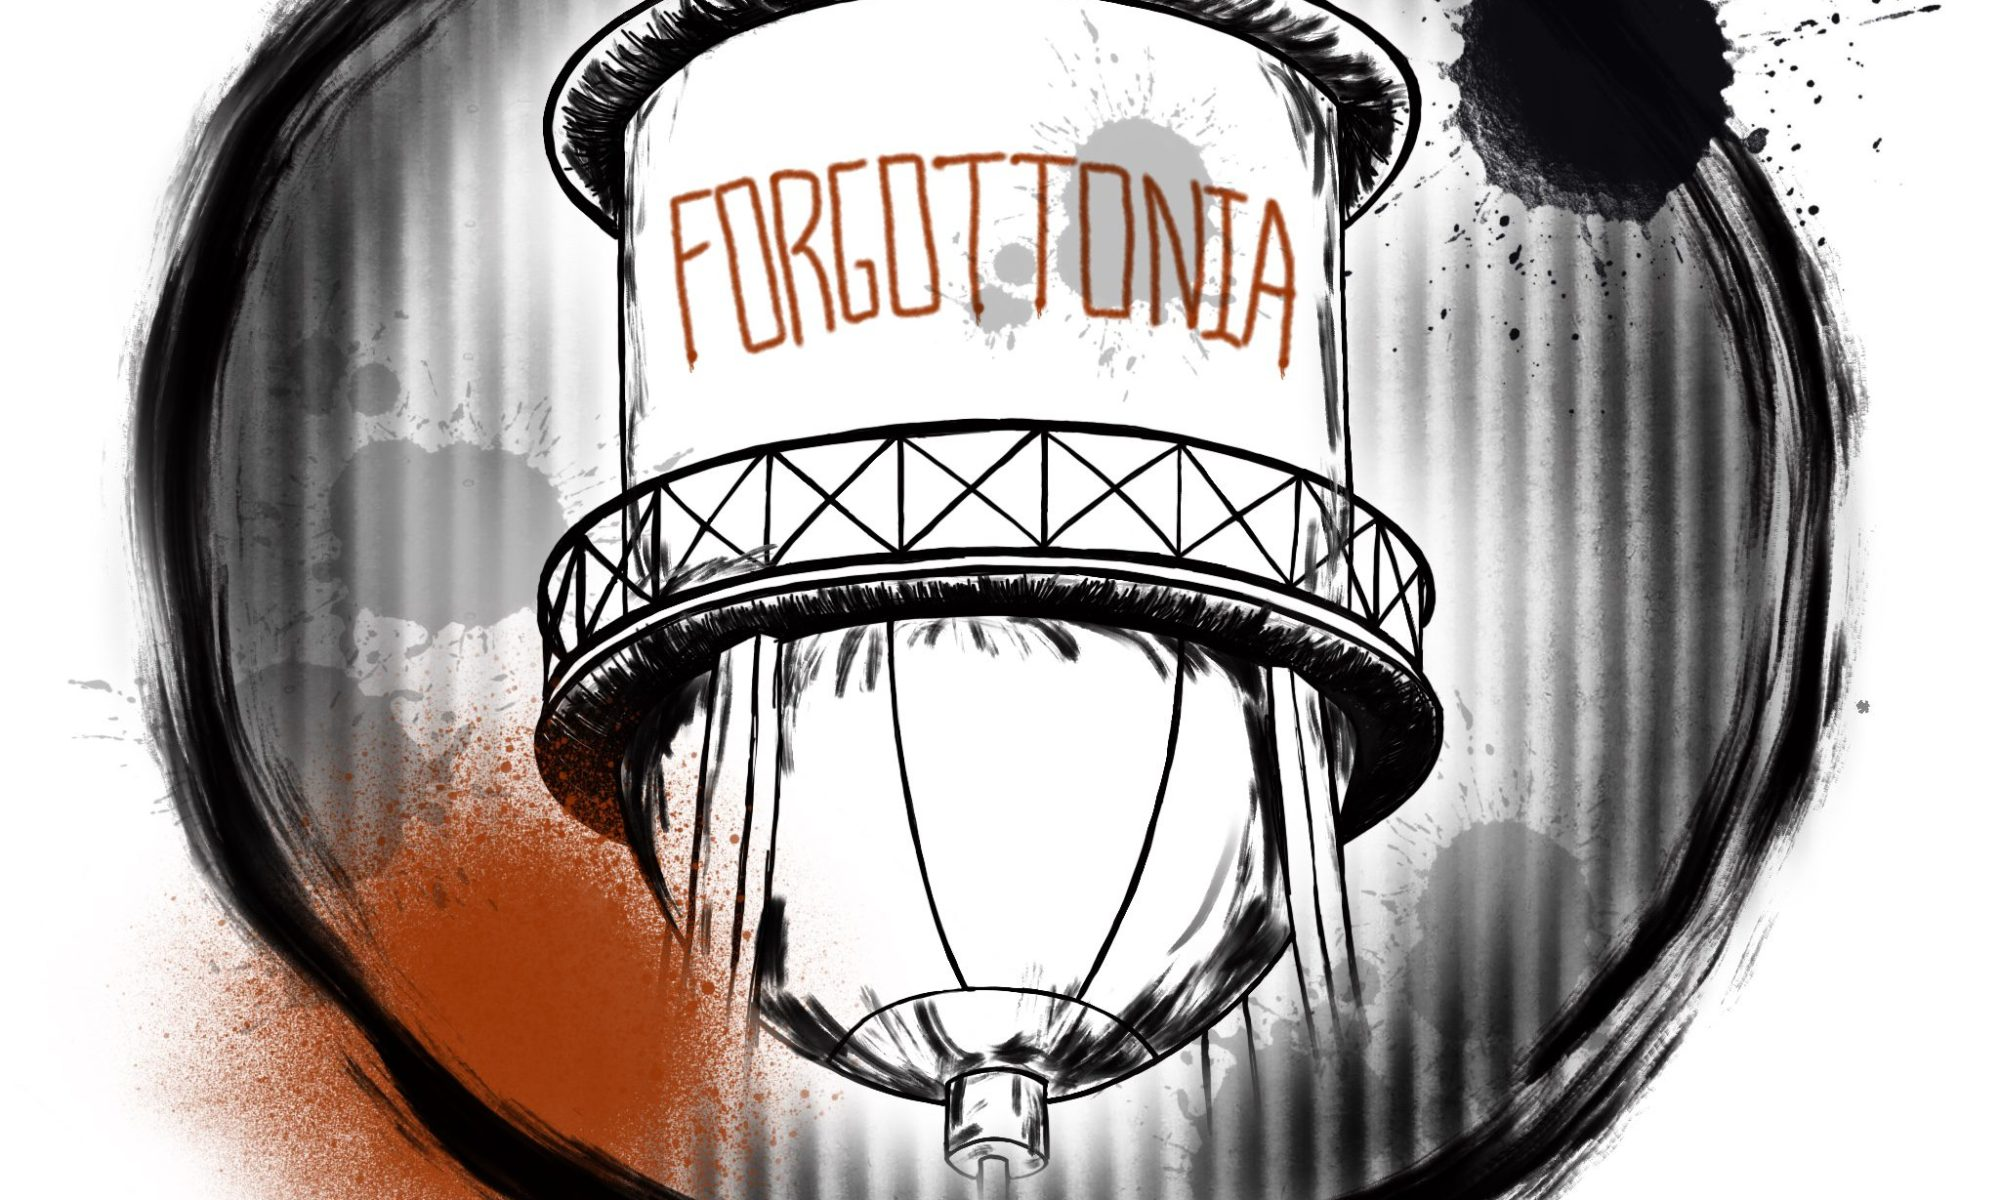 Forgottonia Project Logo